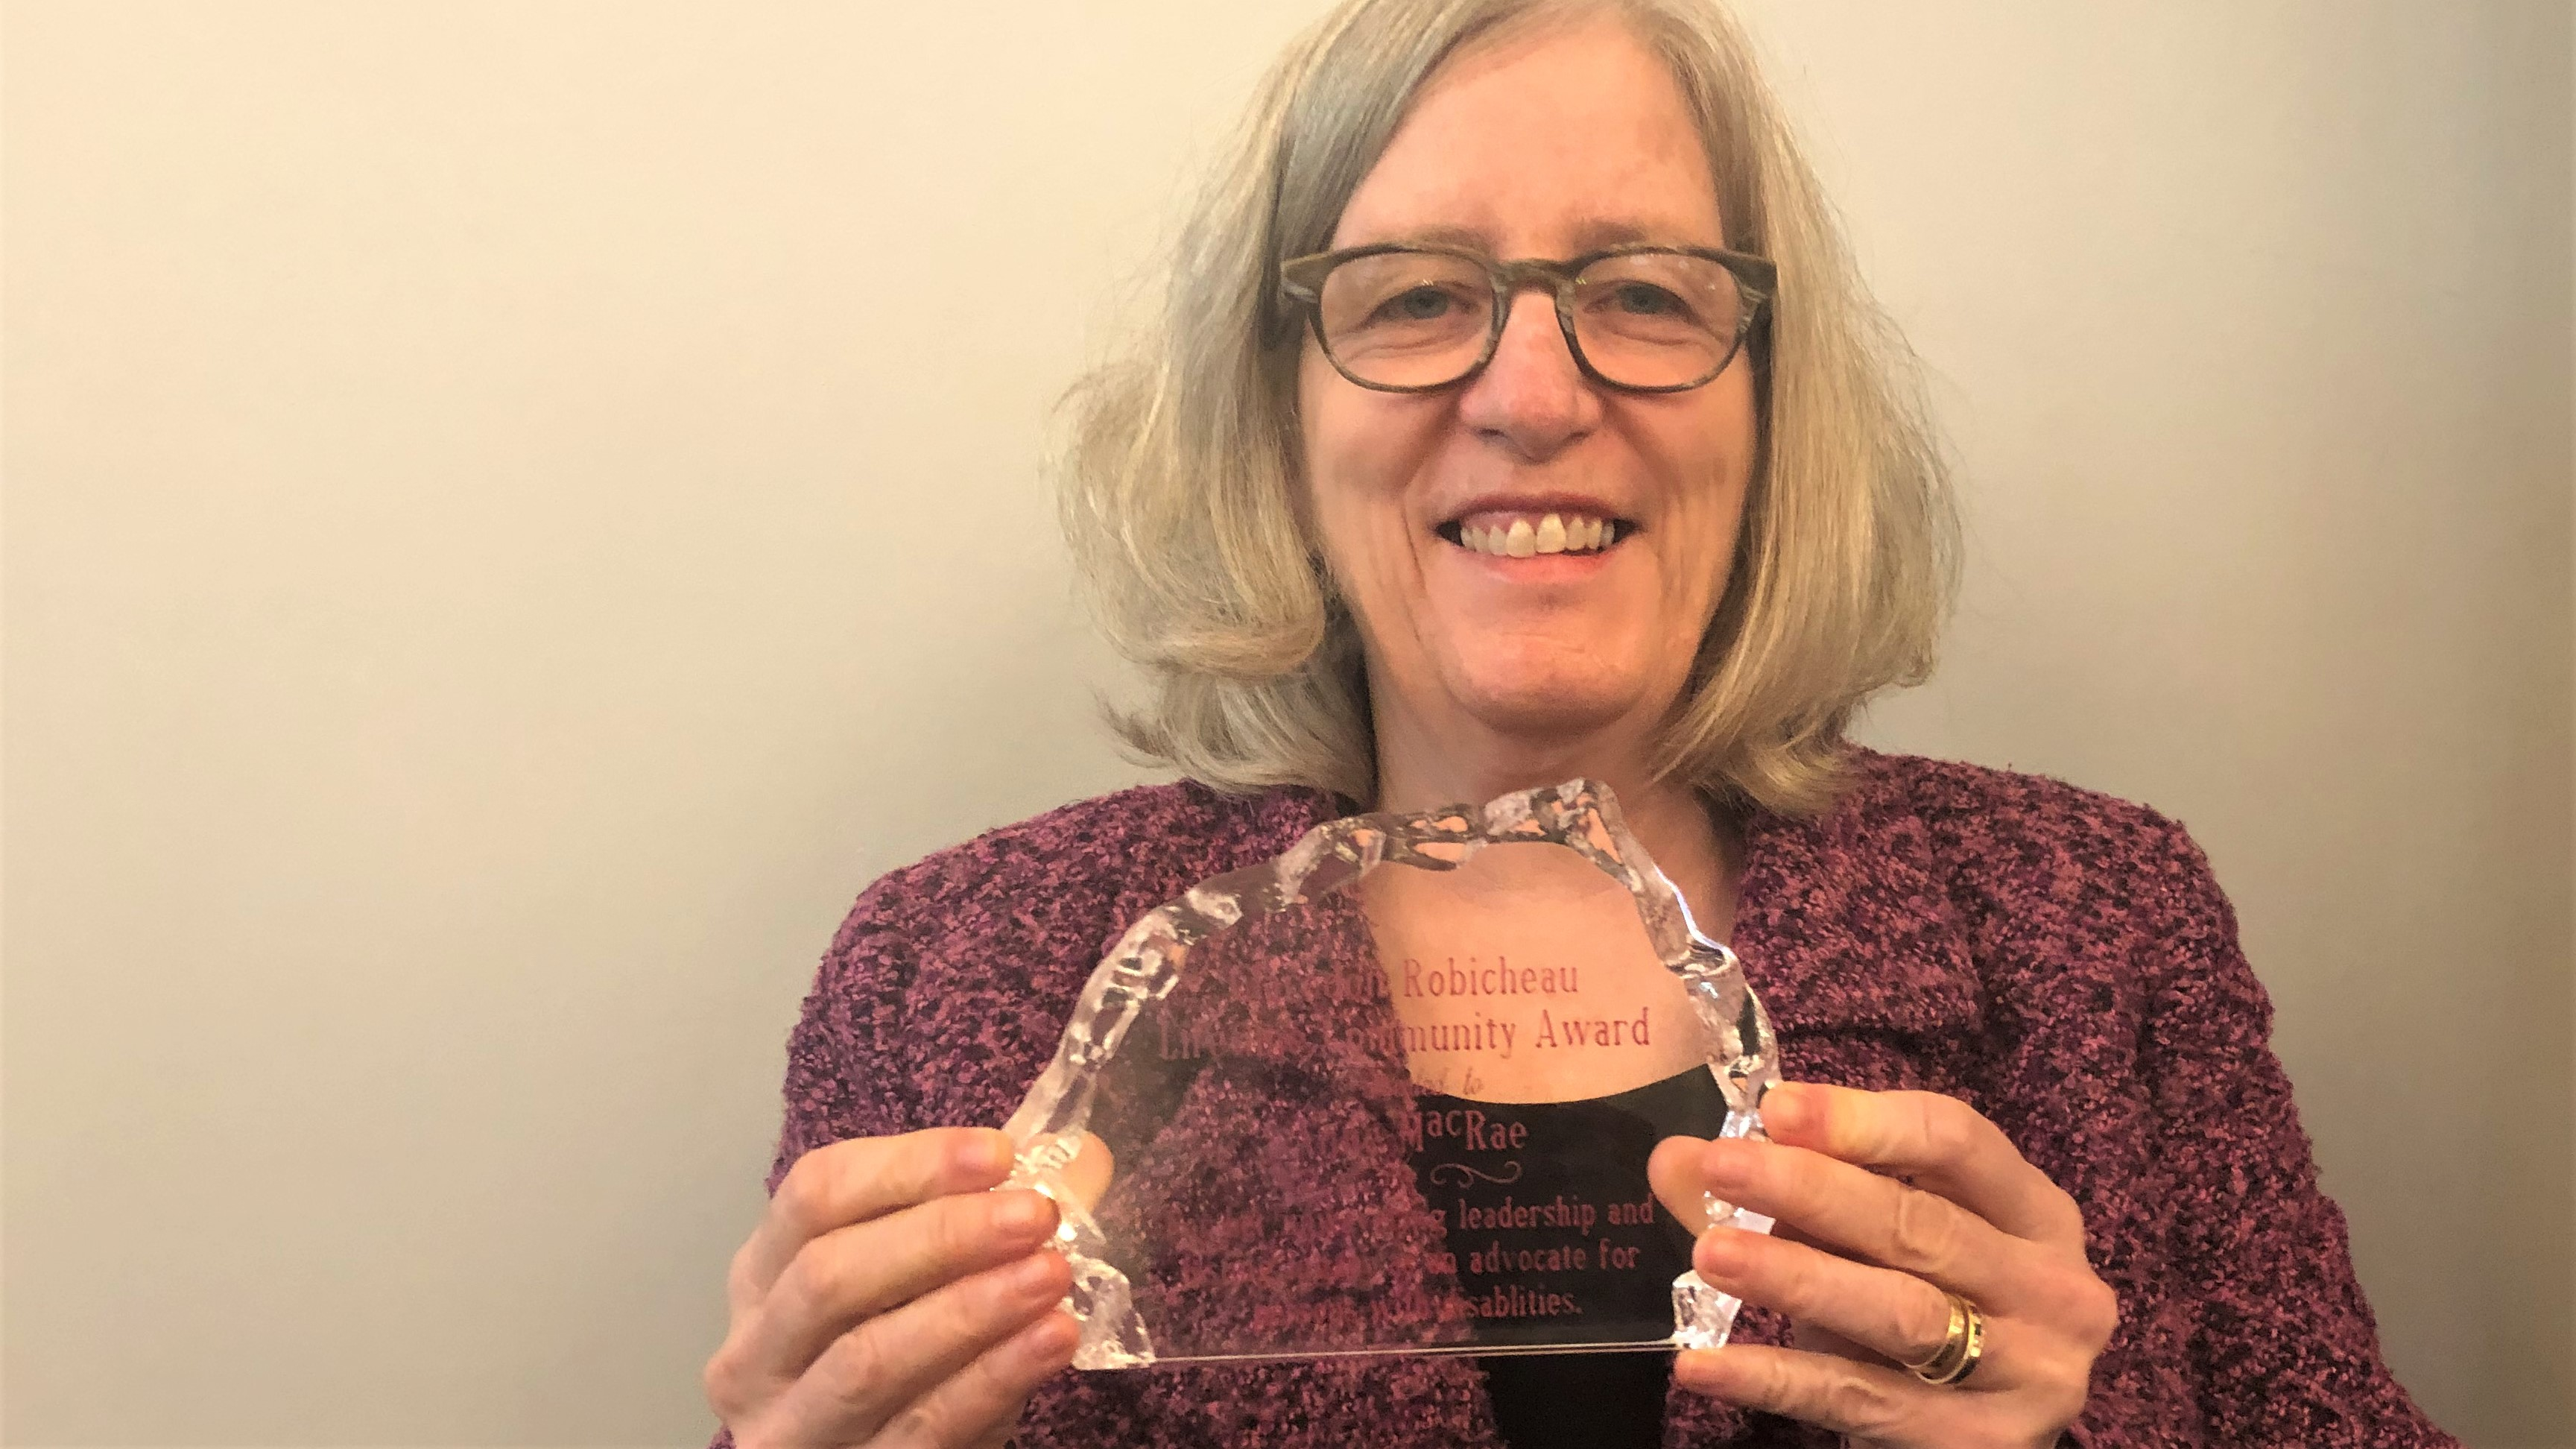 Anne MacRae poses with her award.